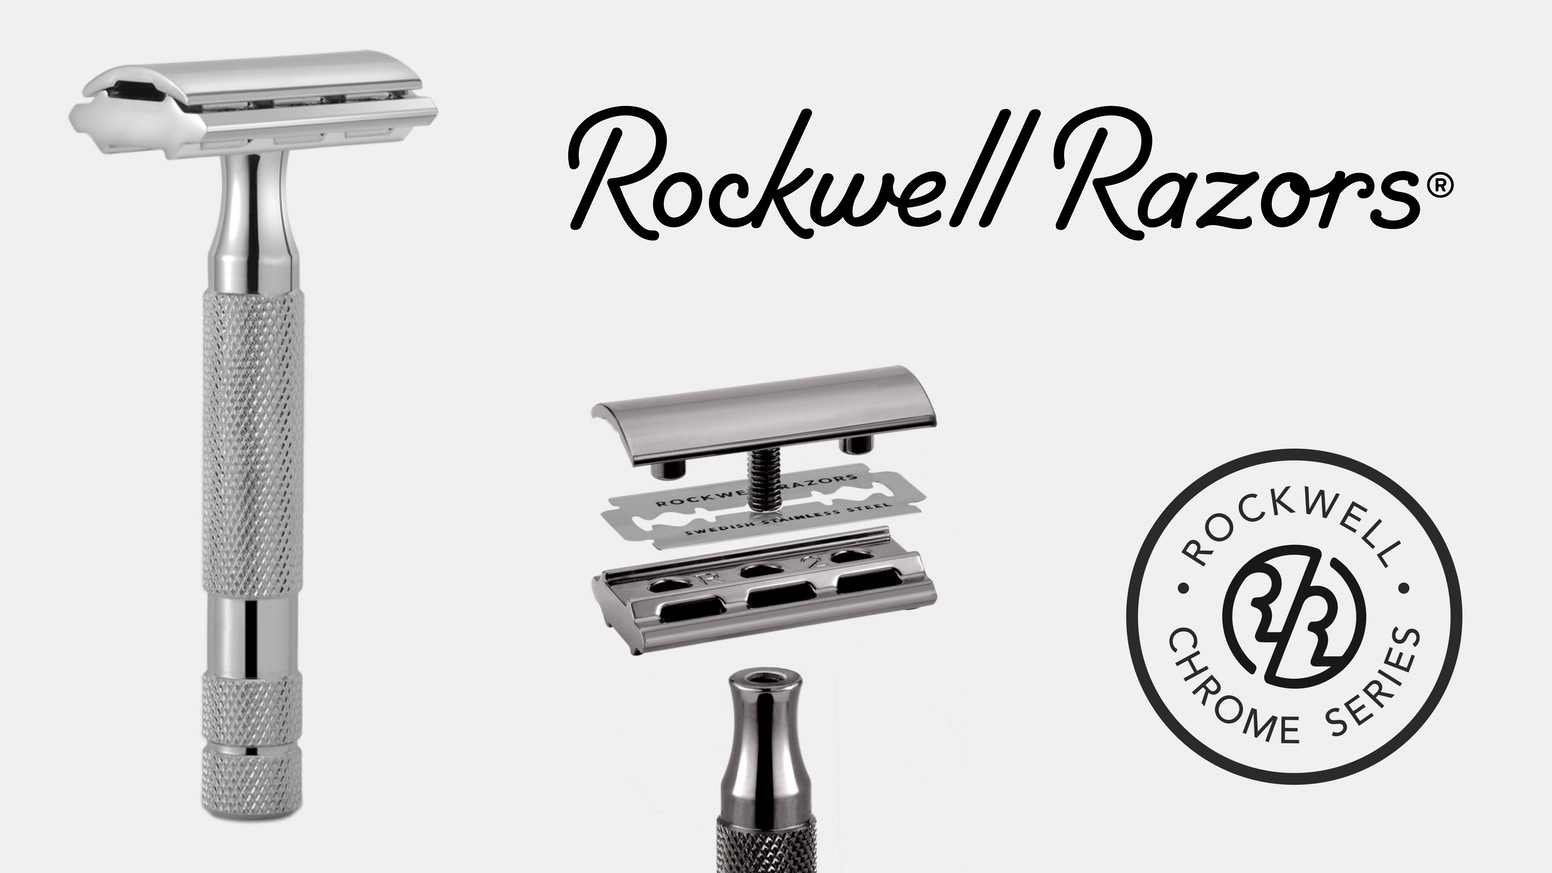 A razor that adjusts to your skin type and stubble length, so you get a close, comfortable shave - every time!